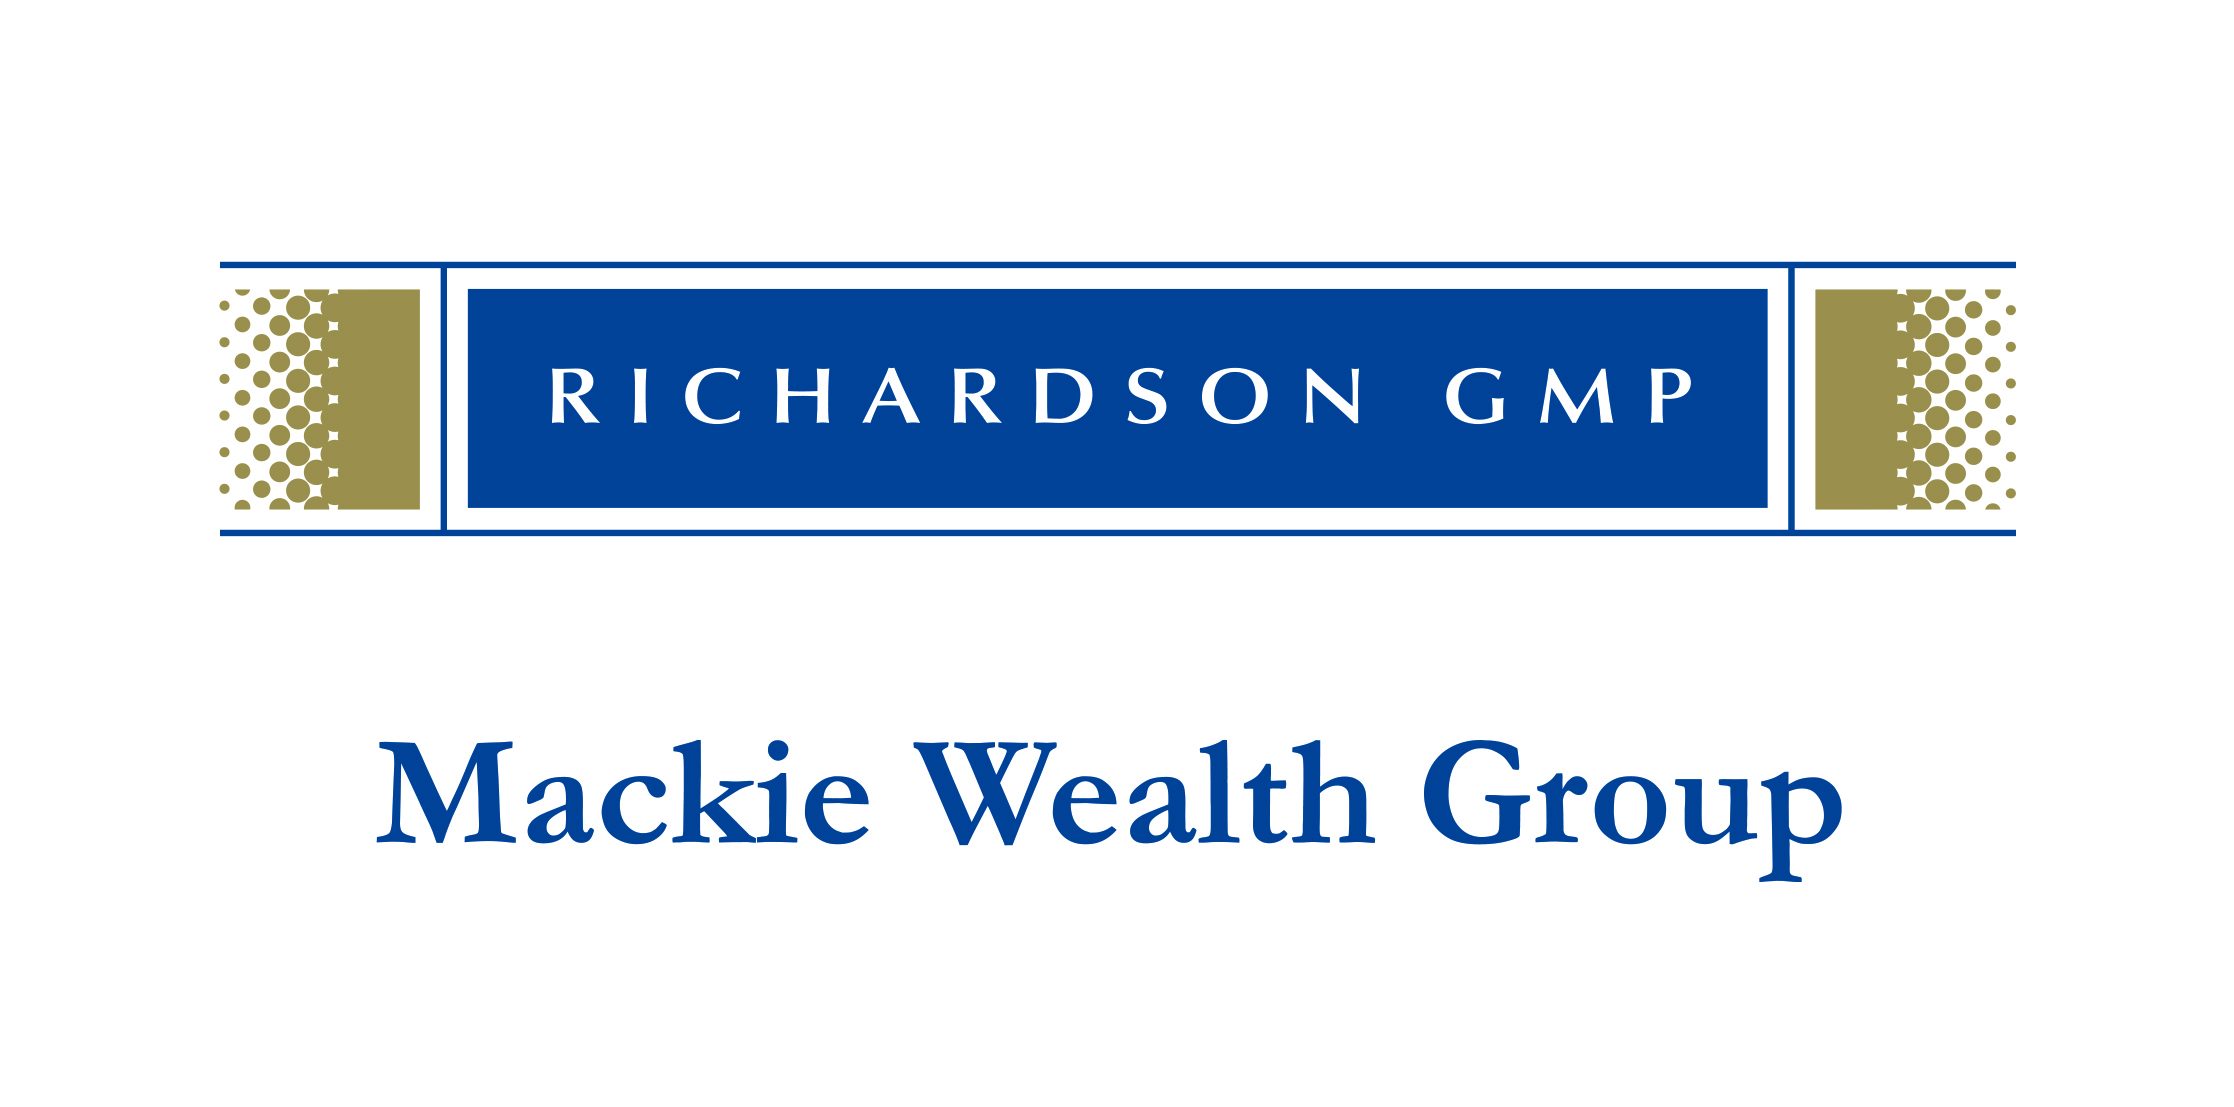 Mackie Wealth Group